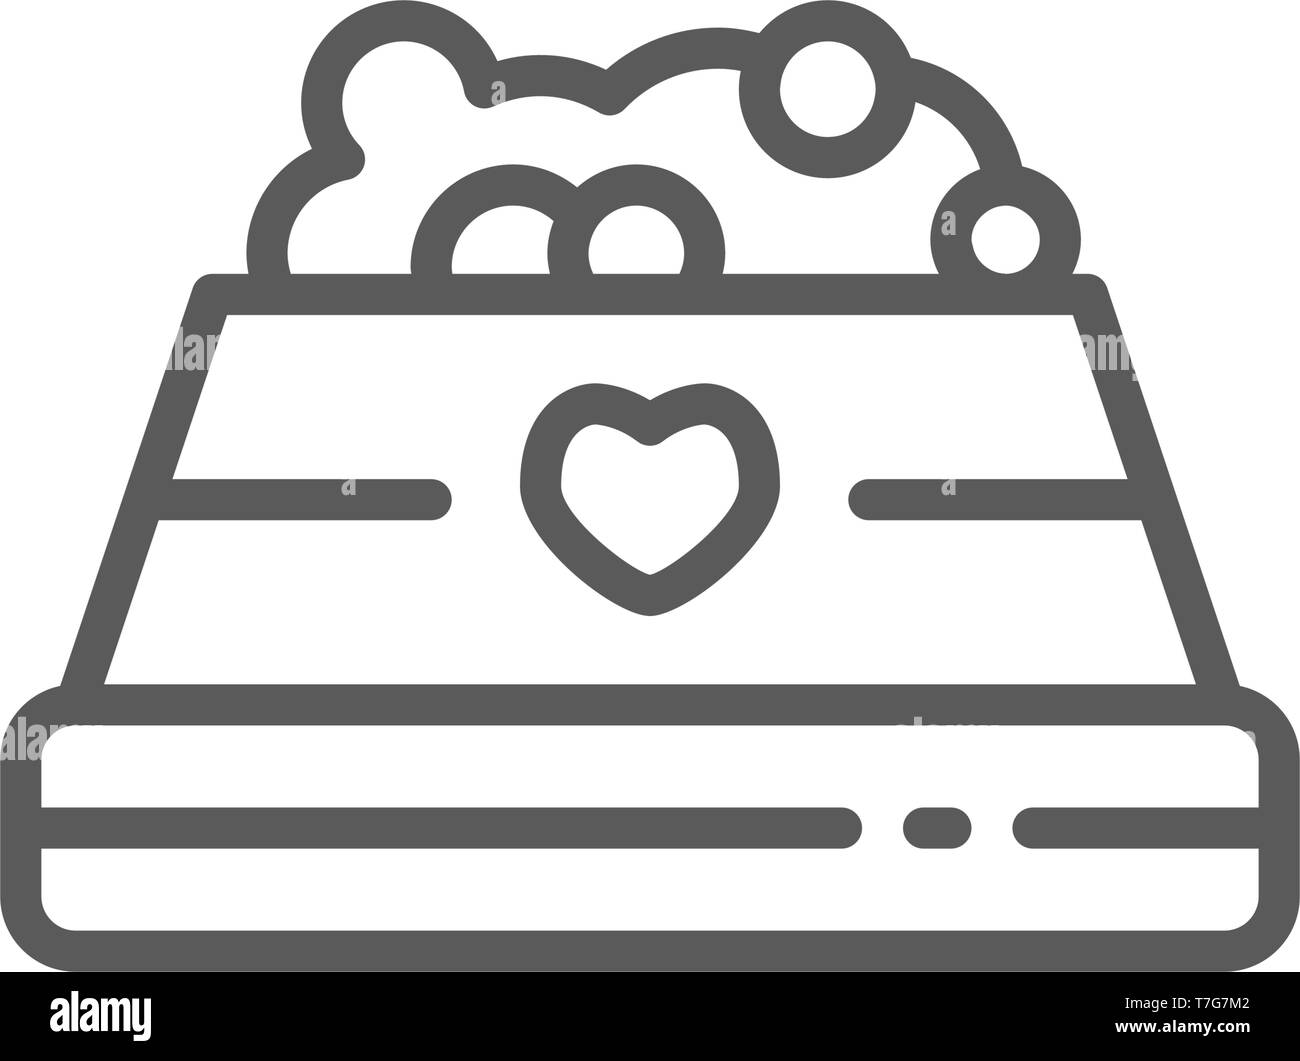 Bowl with pet food line icon. - Stock Vector